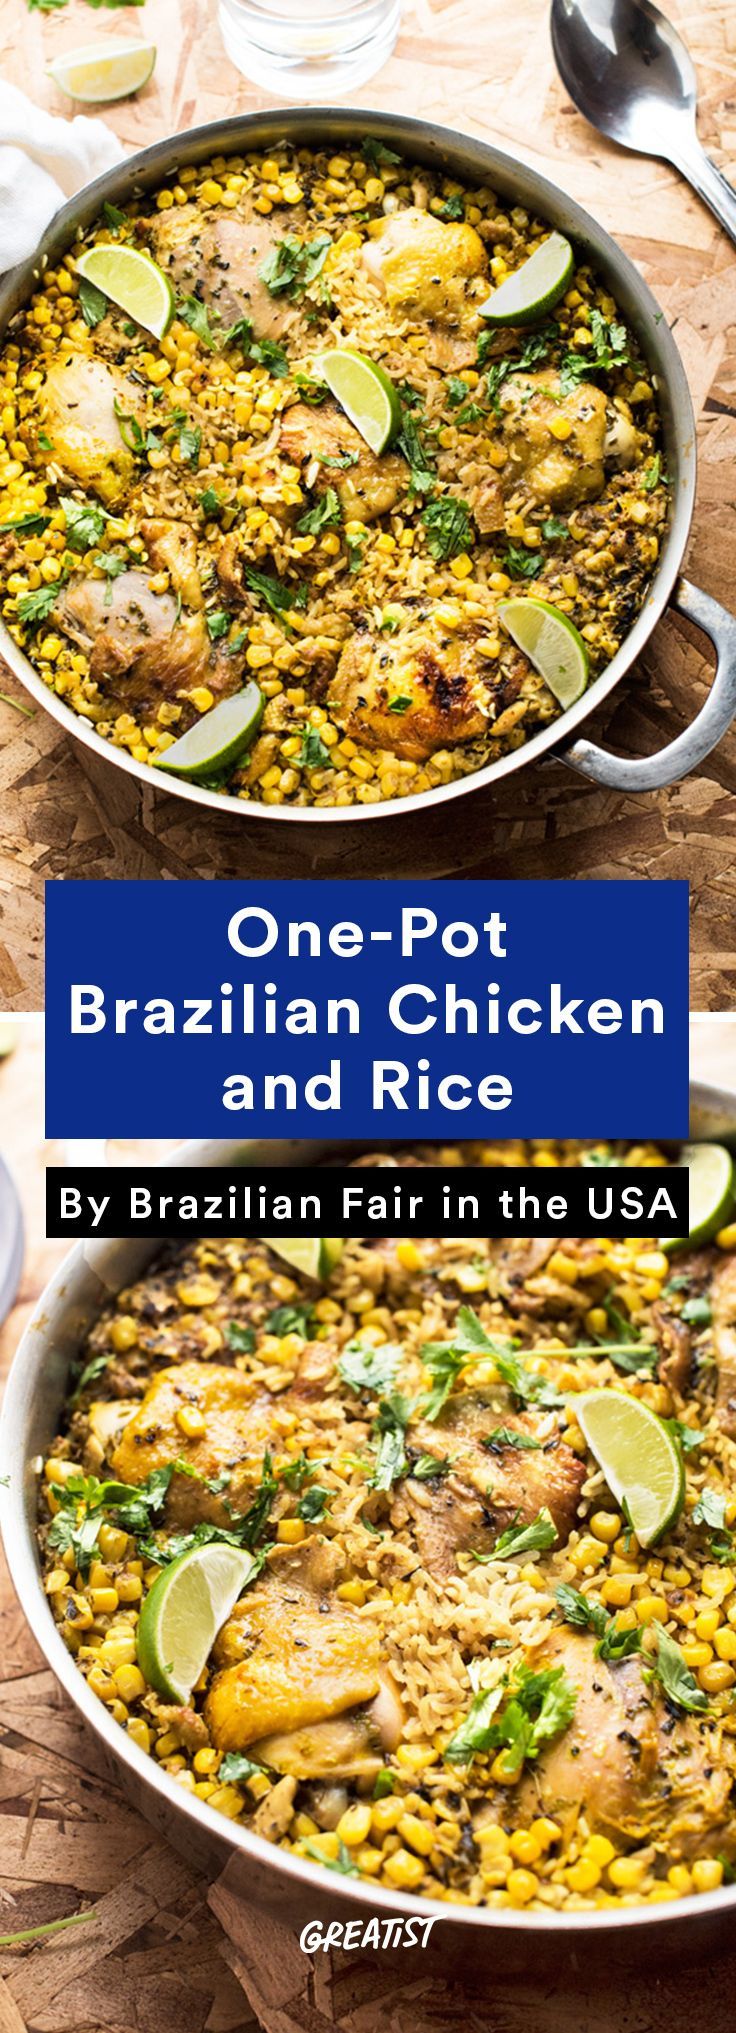 72 best brazilian food images on pinterest brazilian recipes one pot brazilian chicken and rice so delicious healthy brazilian forumfinder Images